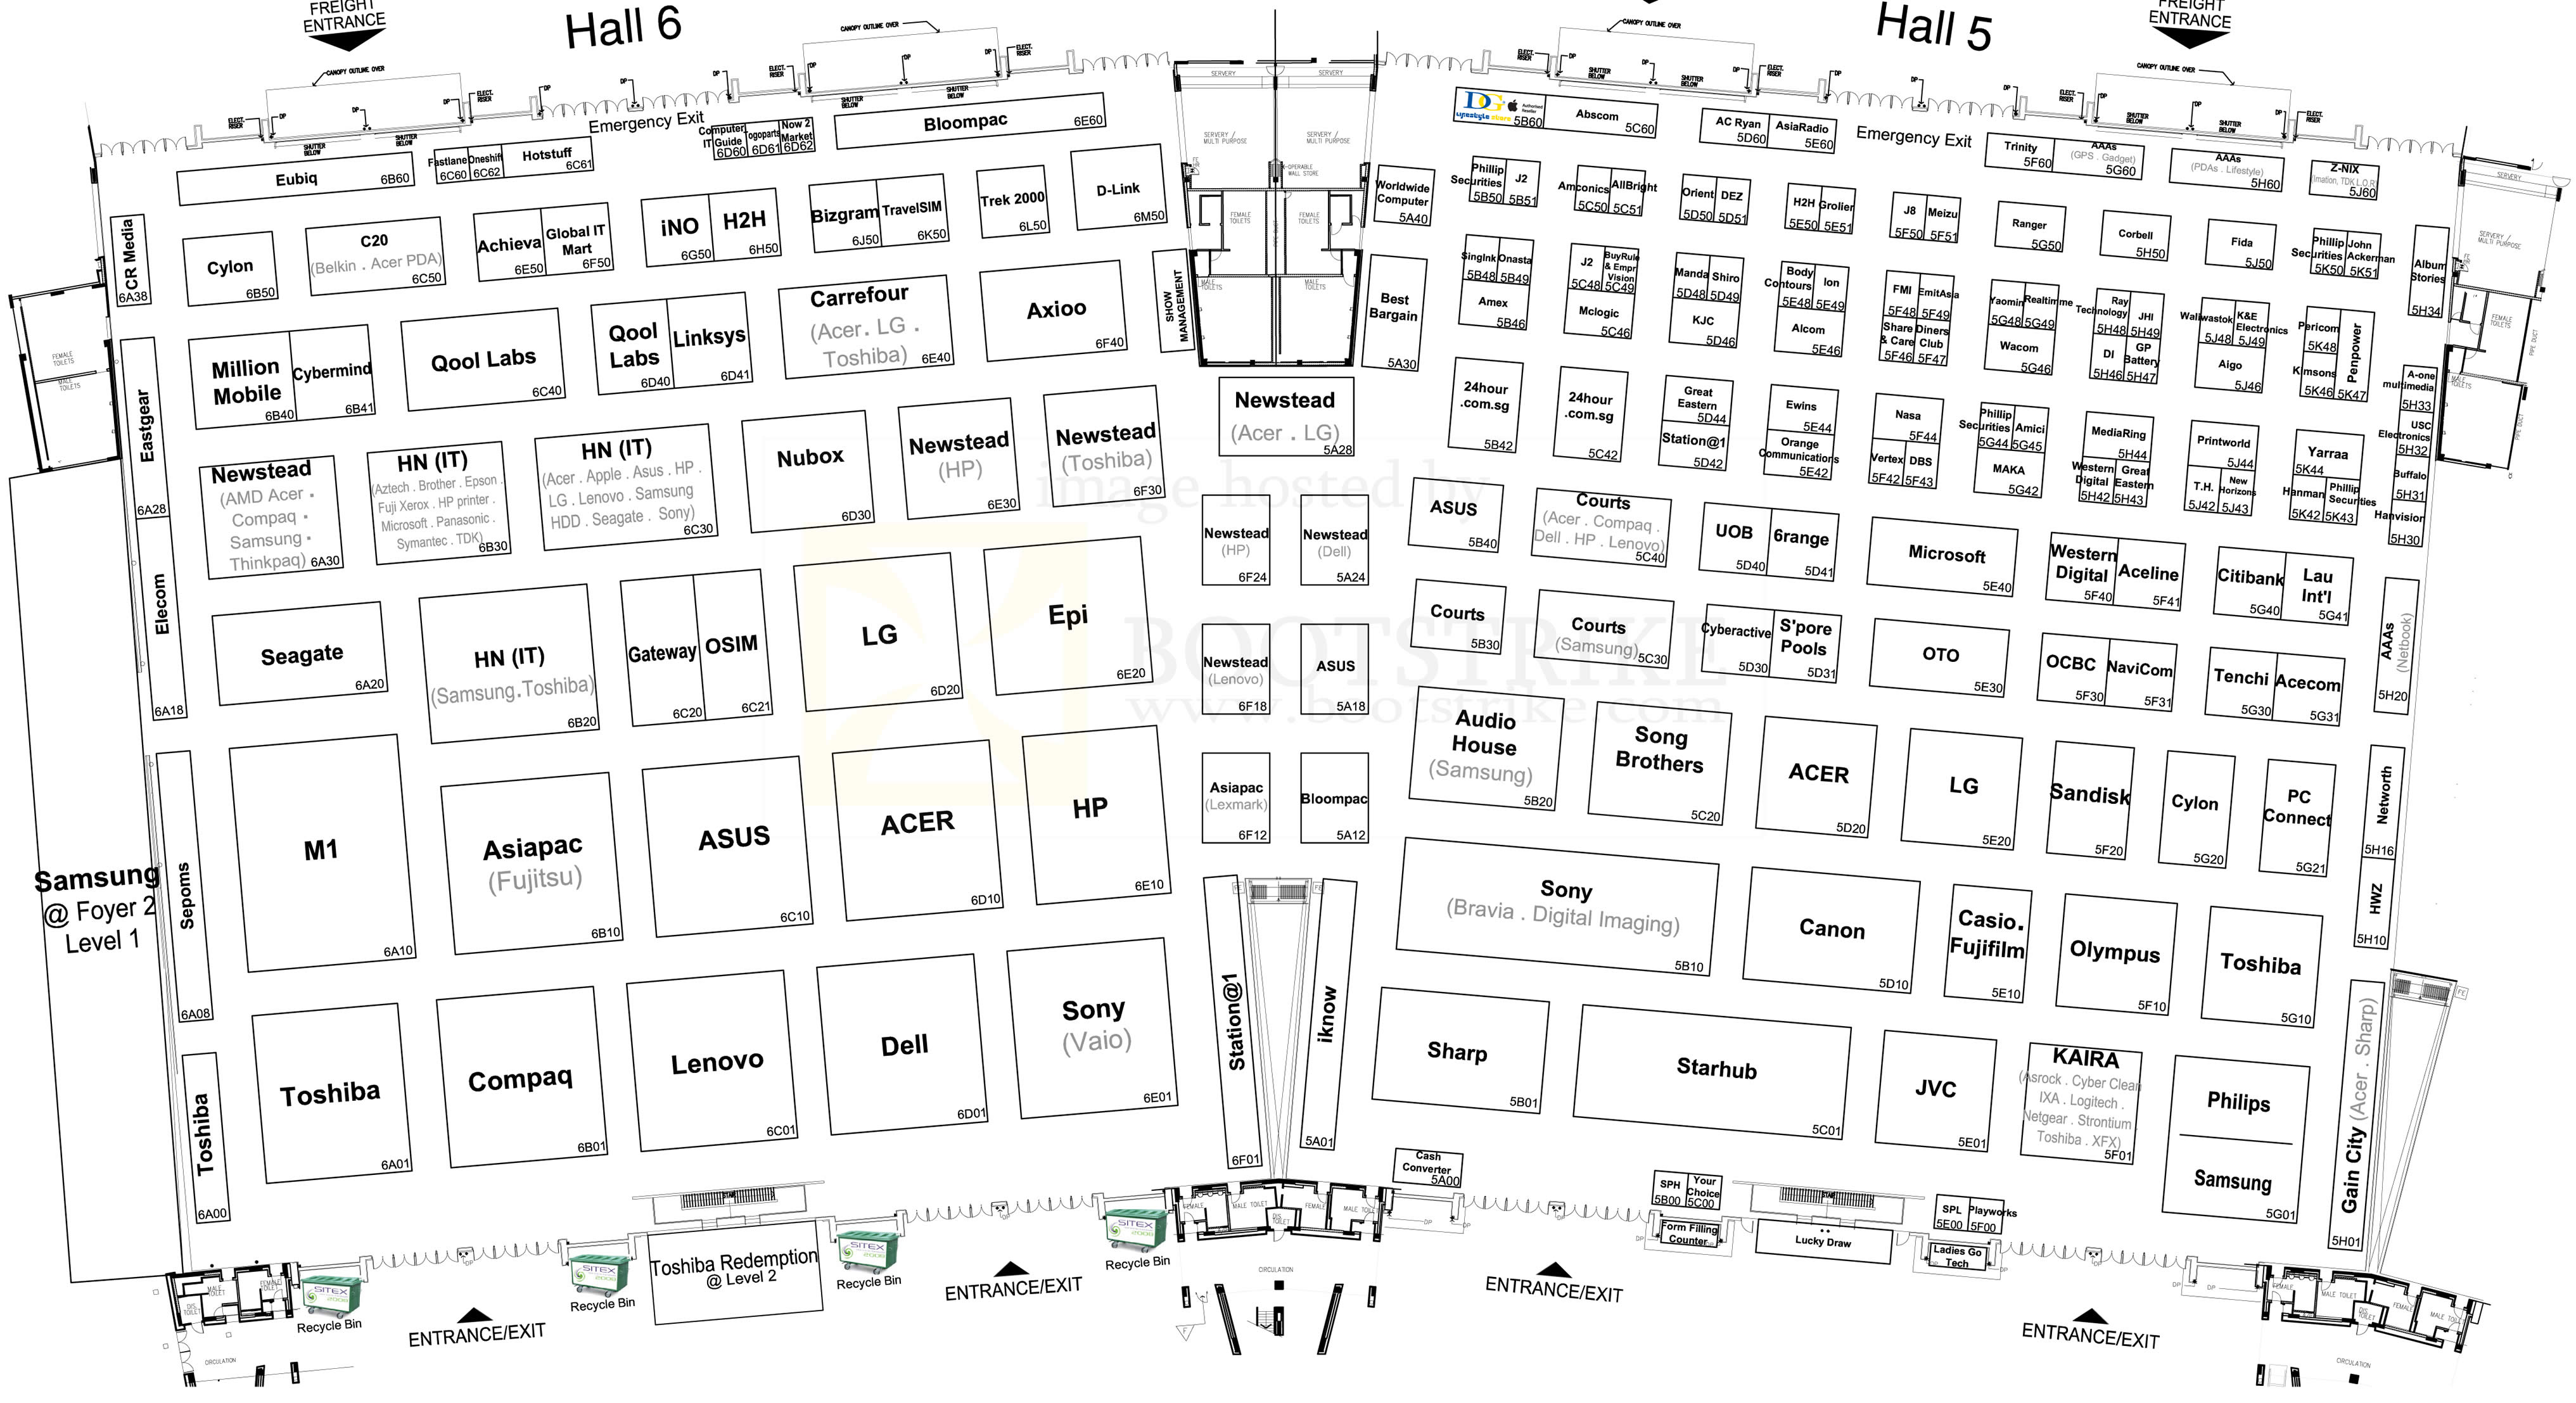 Sitex 2009 price list image brochure of Floor Plan Map Hall 5 Hall 6